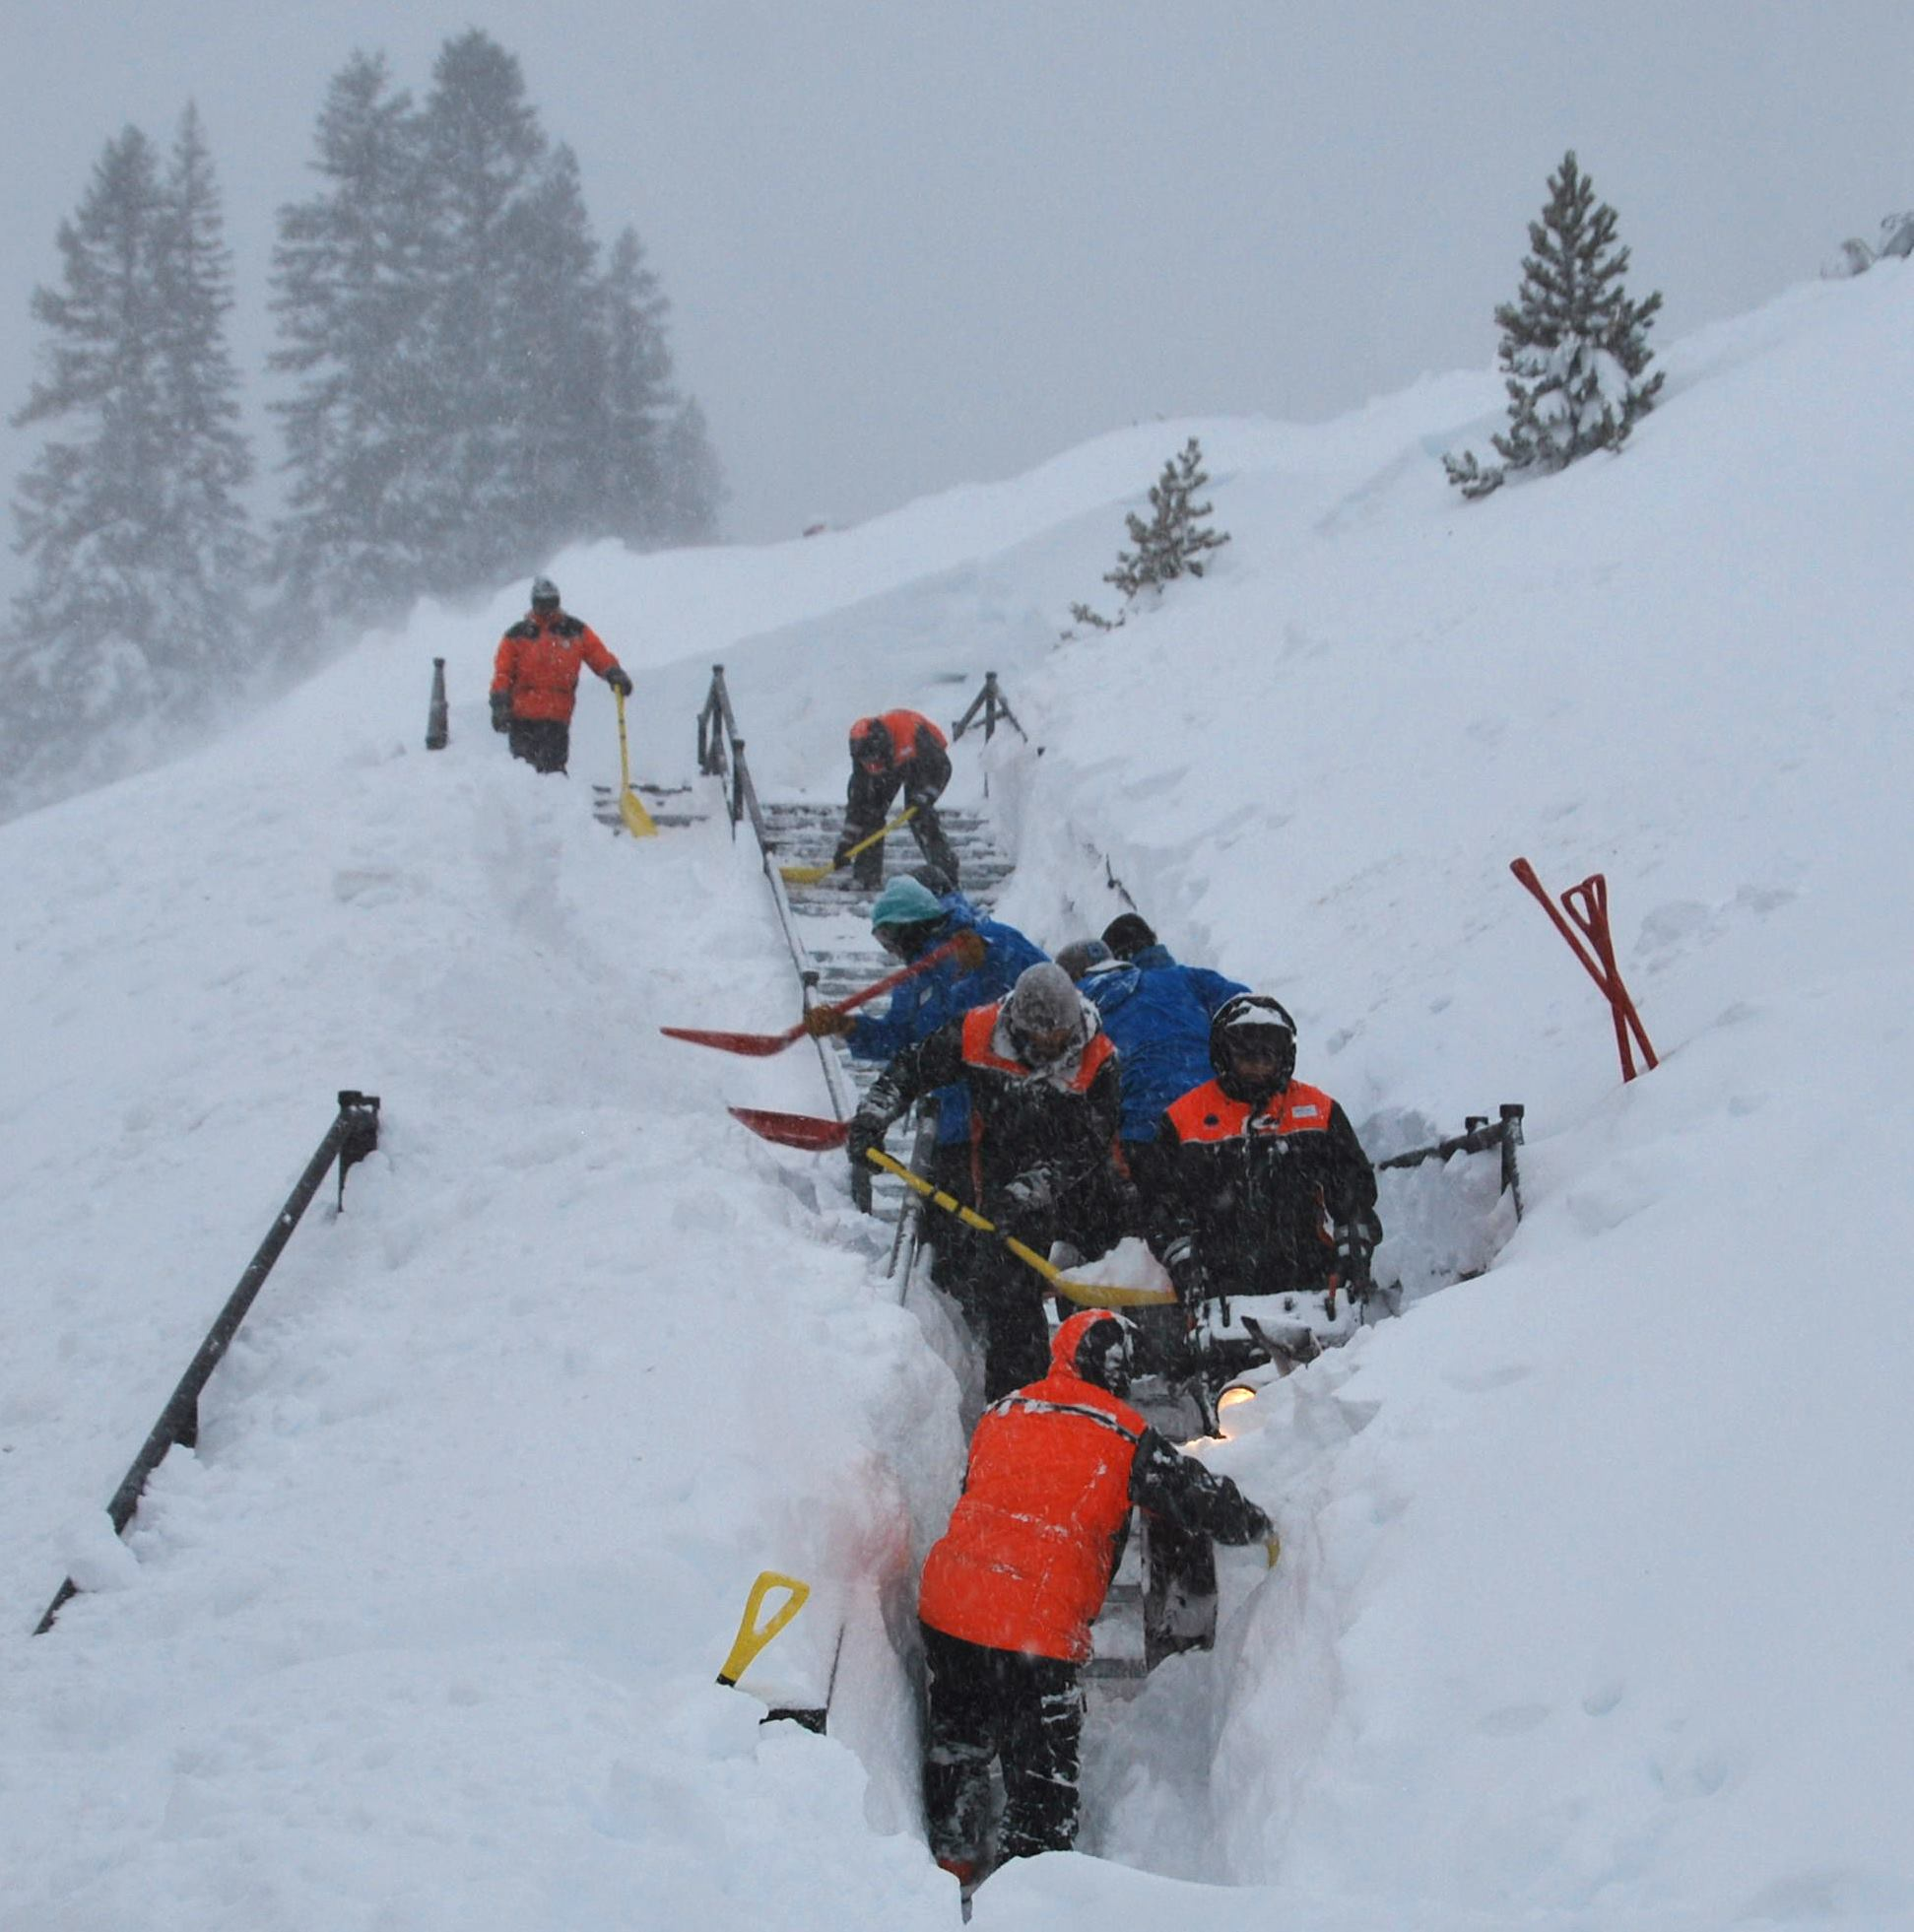 Digging out Mt. Rose after all that snow. Image: Mt. Rose Facebook Page